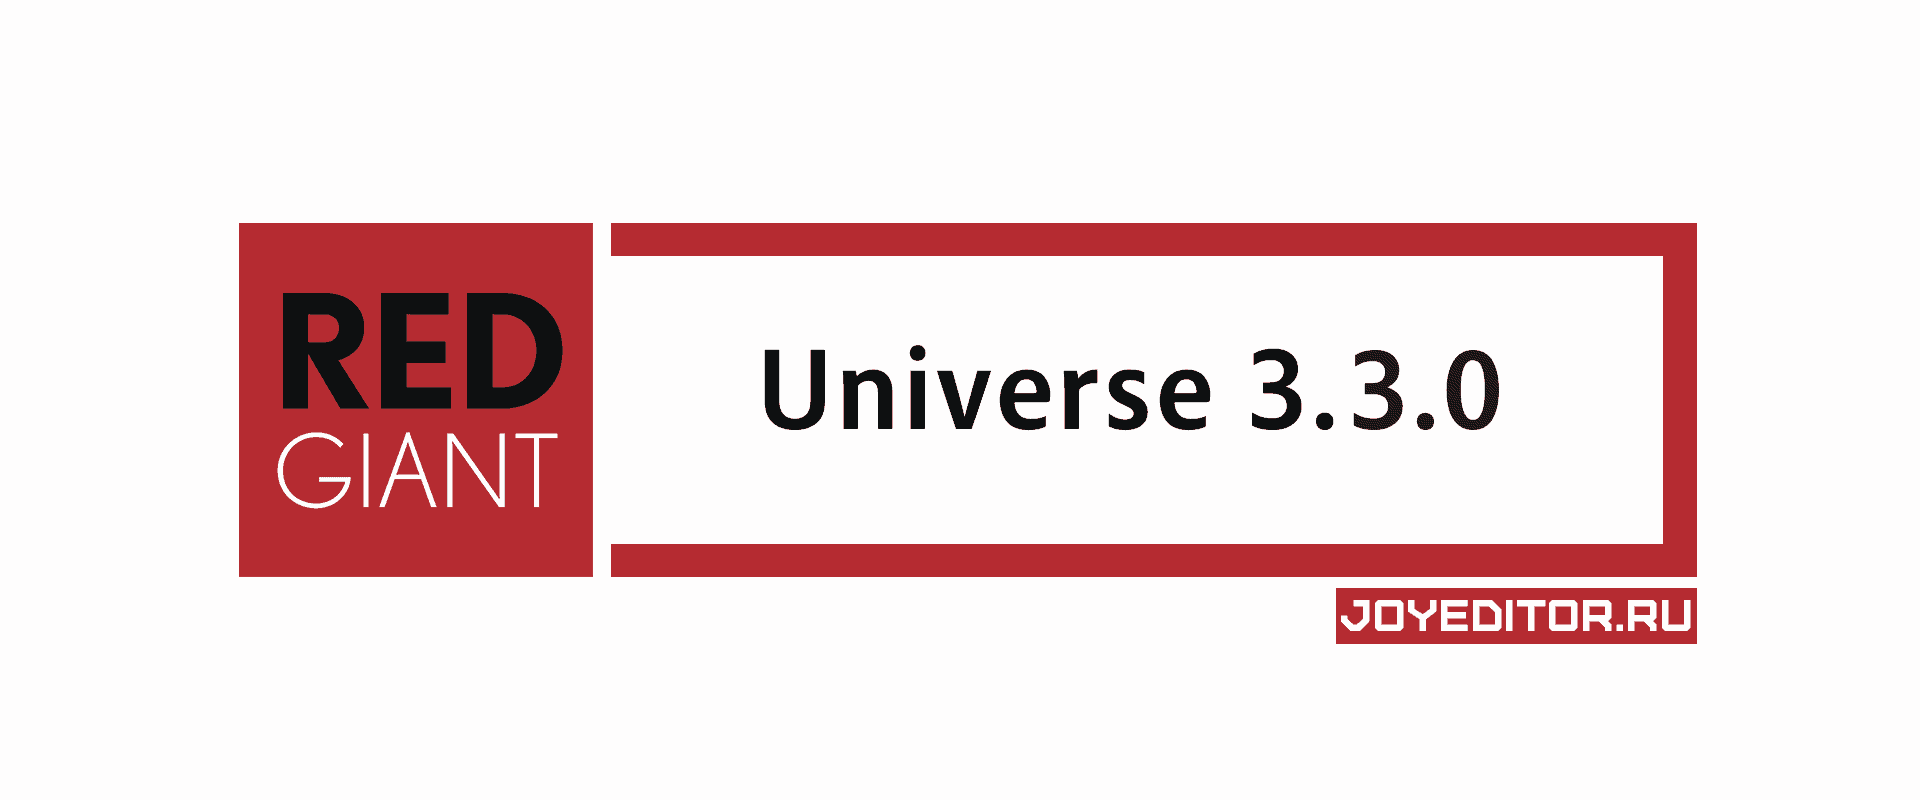 Red Giant - Universe 3.3.0